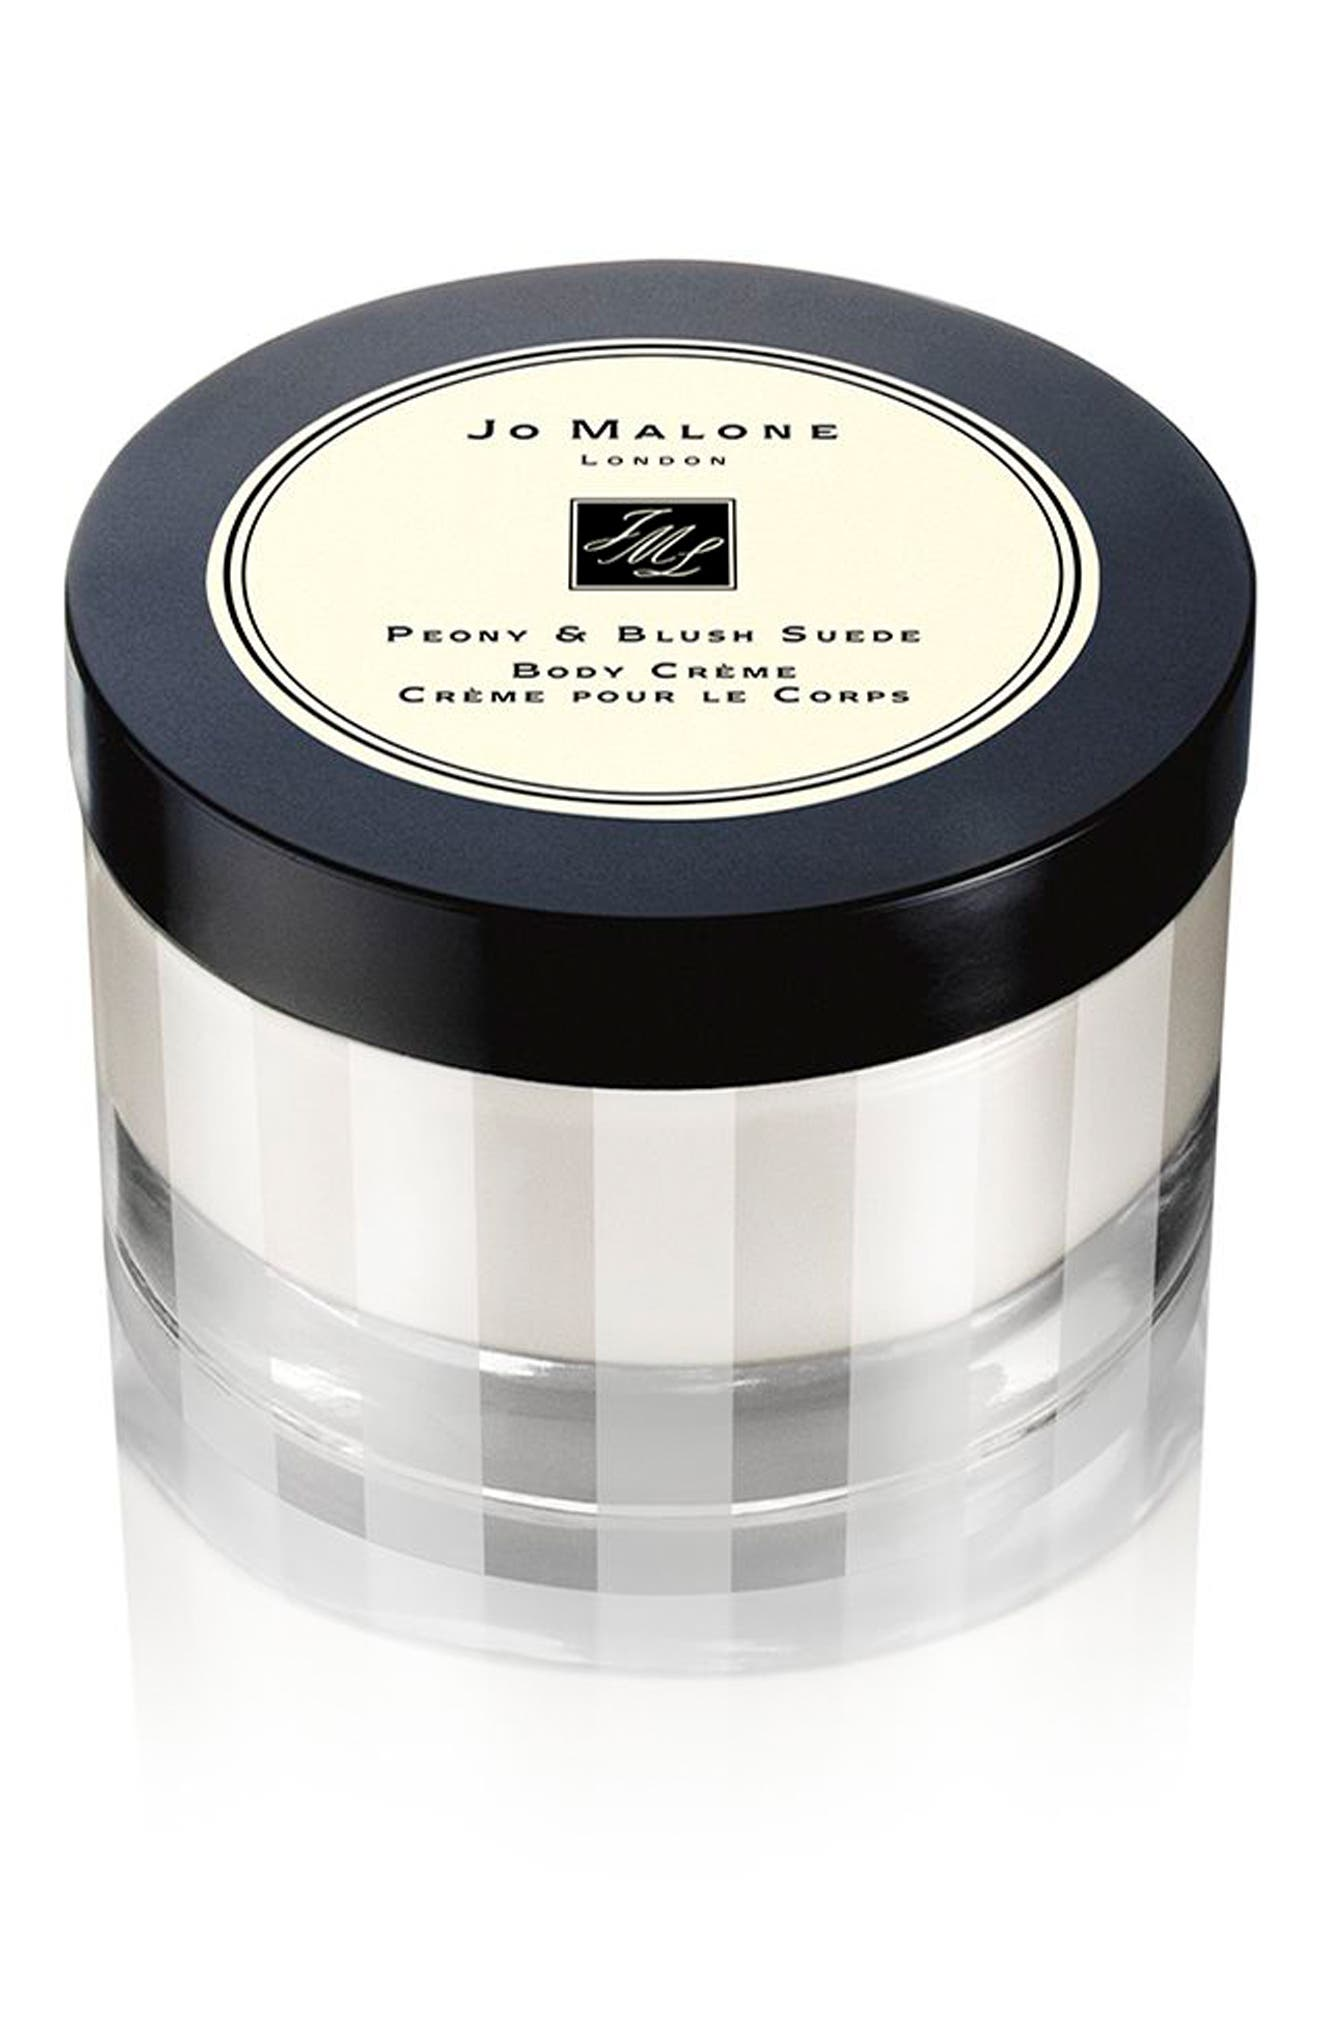 Jo Malone London™ Peony & Blush Suede Body Crème